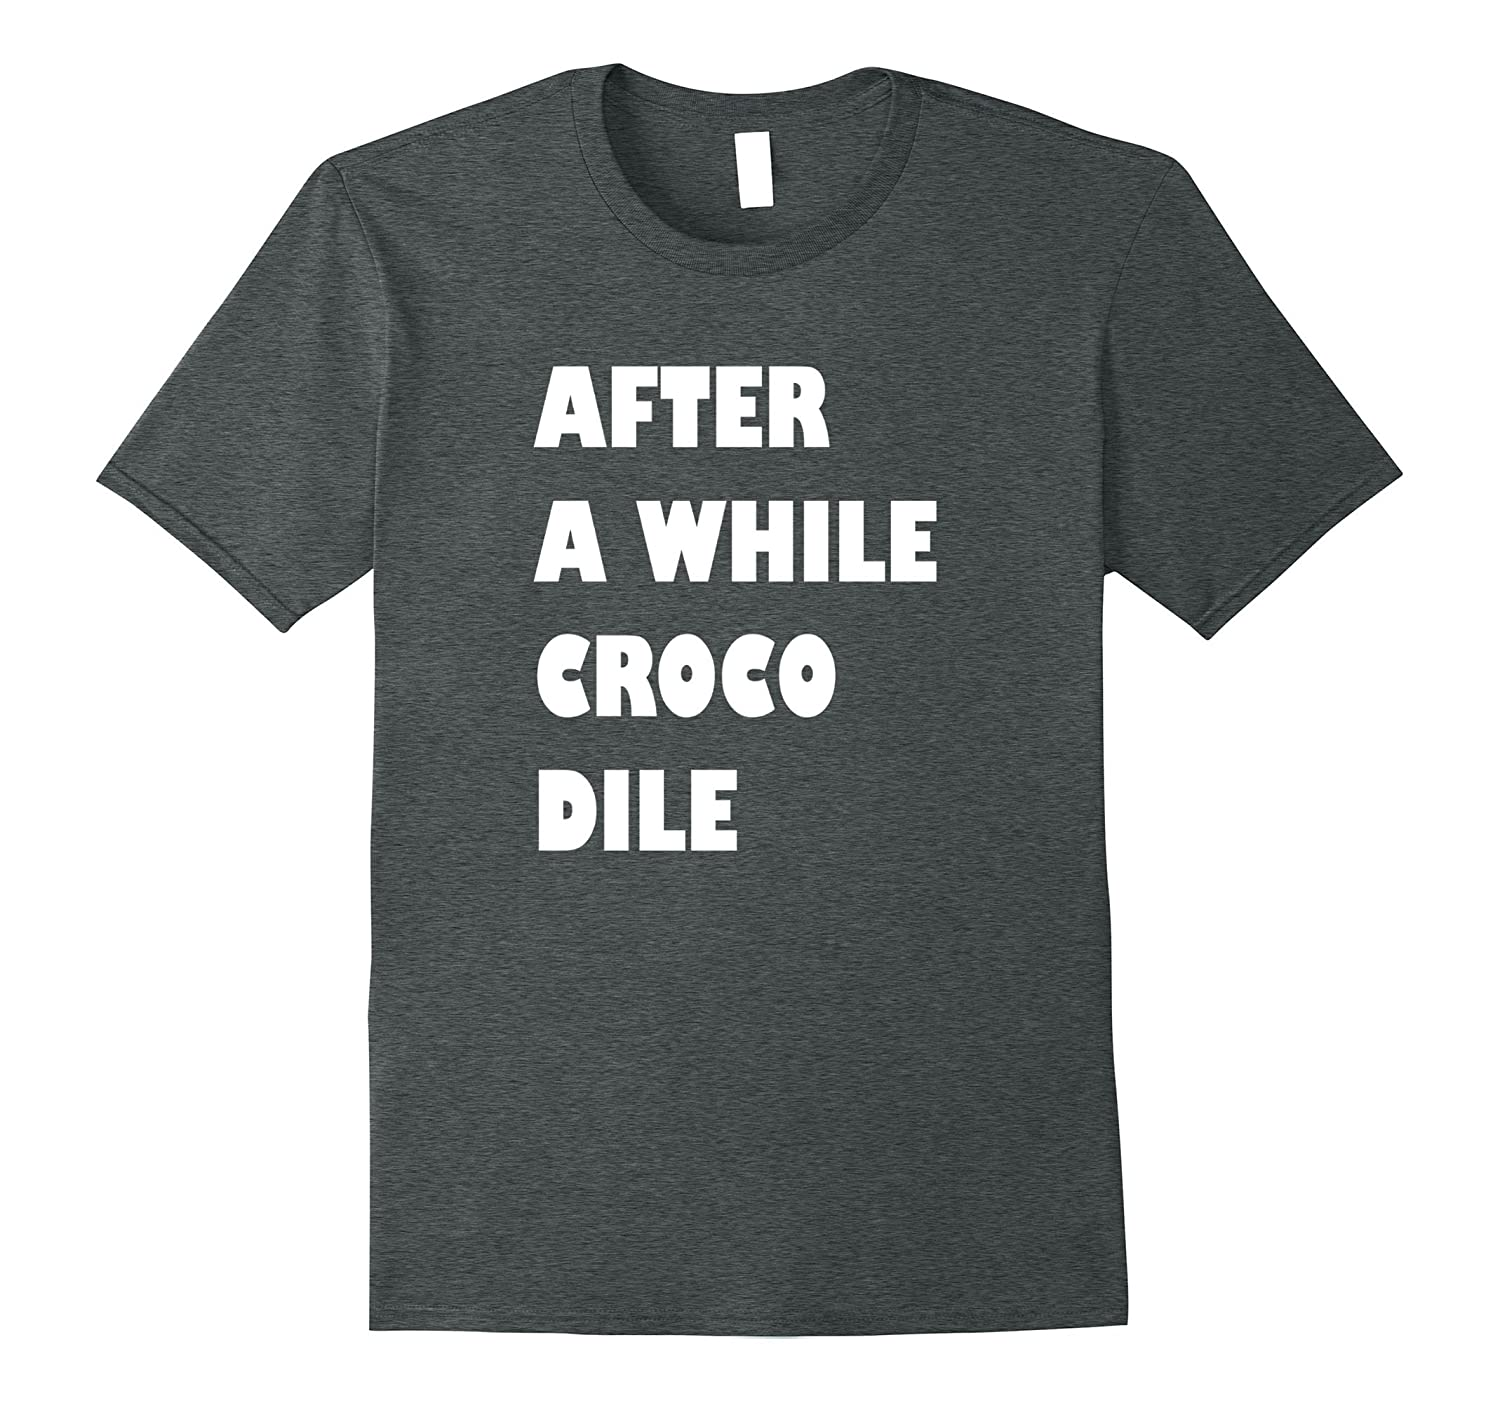 After A While Crocodile BFF T-shirt by Nozzld-CL